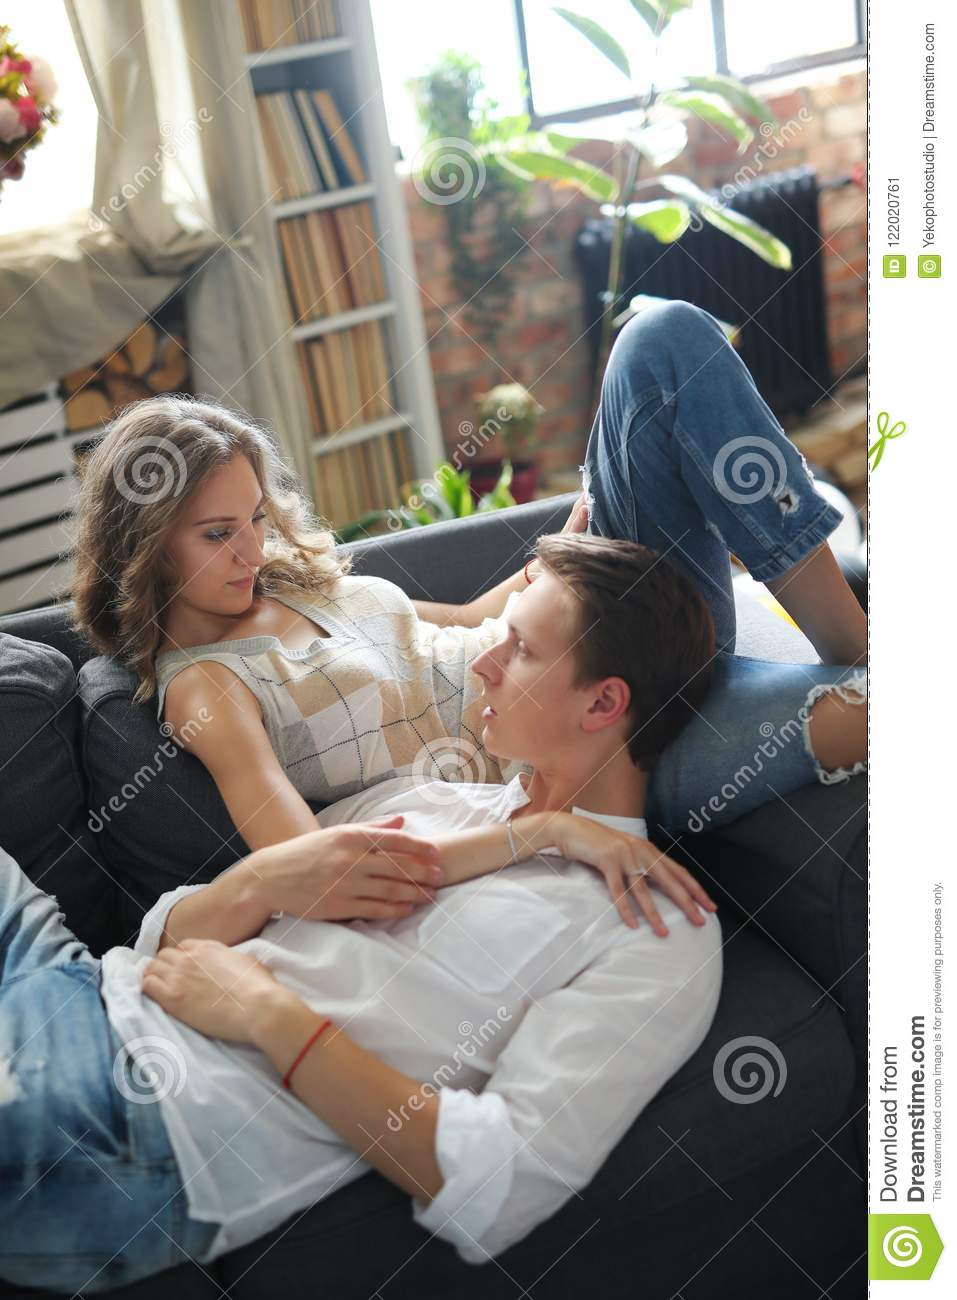 Lovely Couple At Home Stock Image Image Of Cute Apartment 122020761